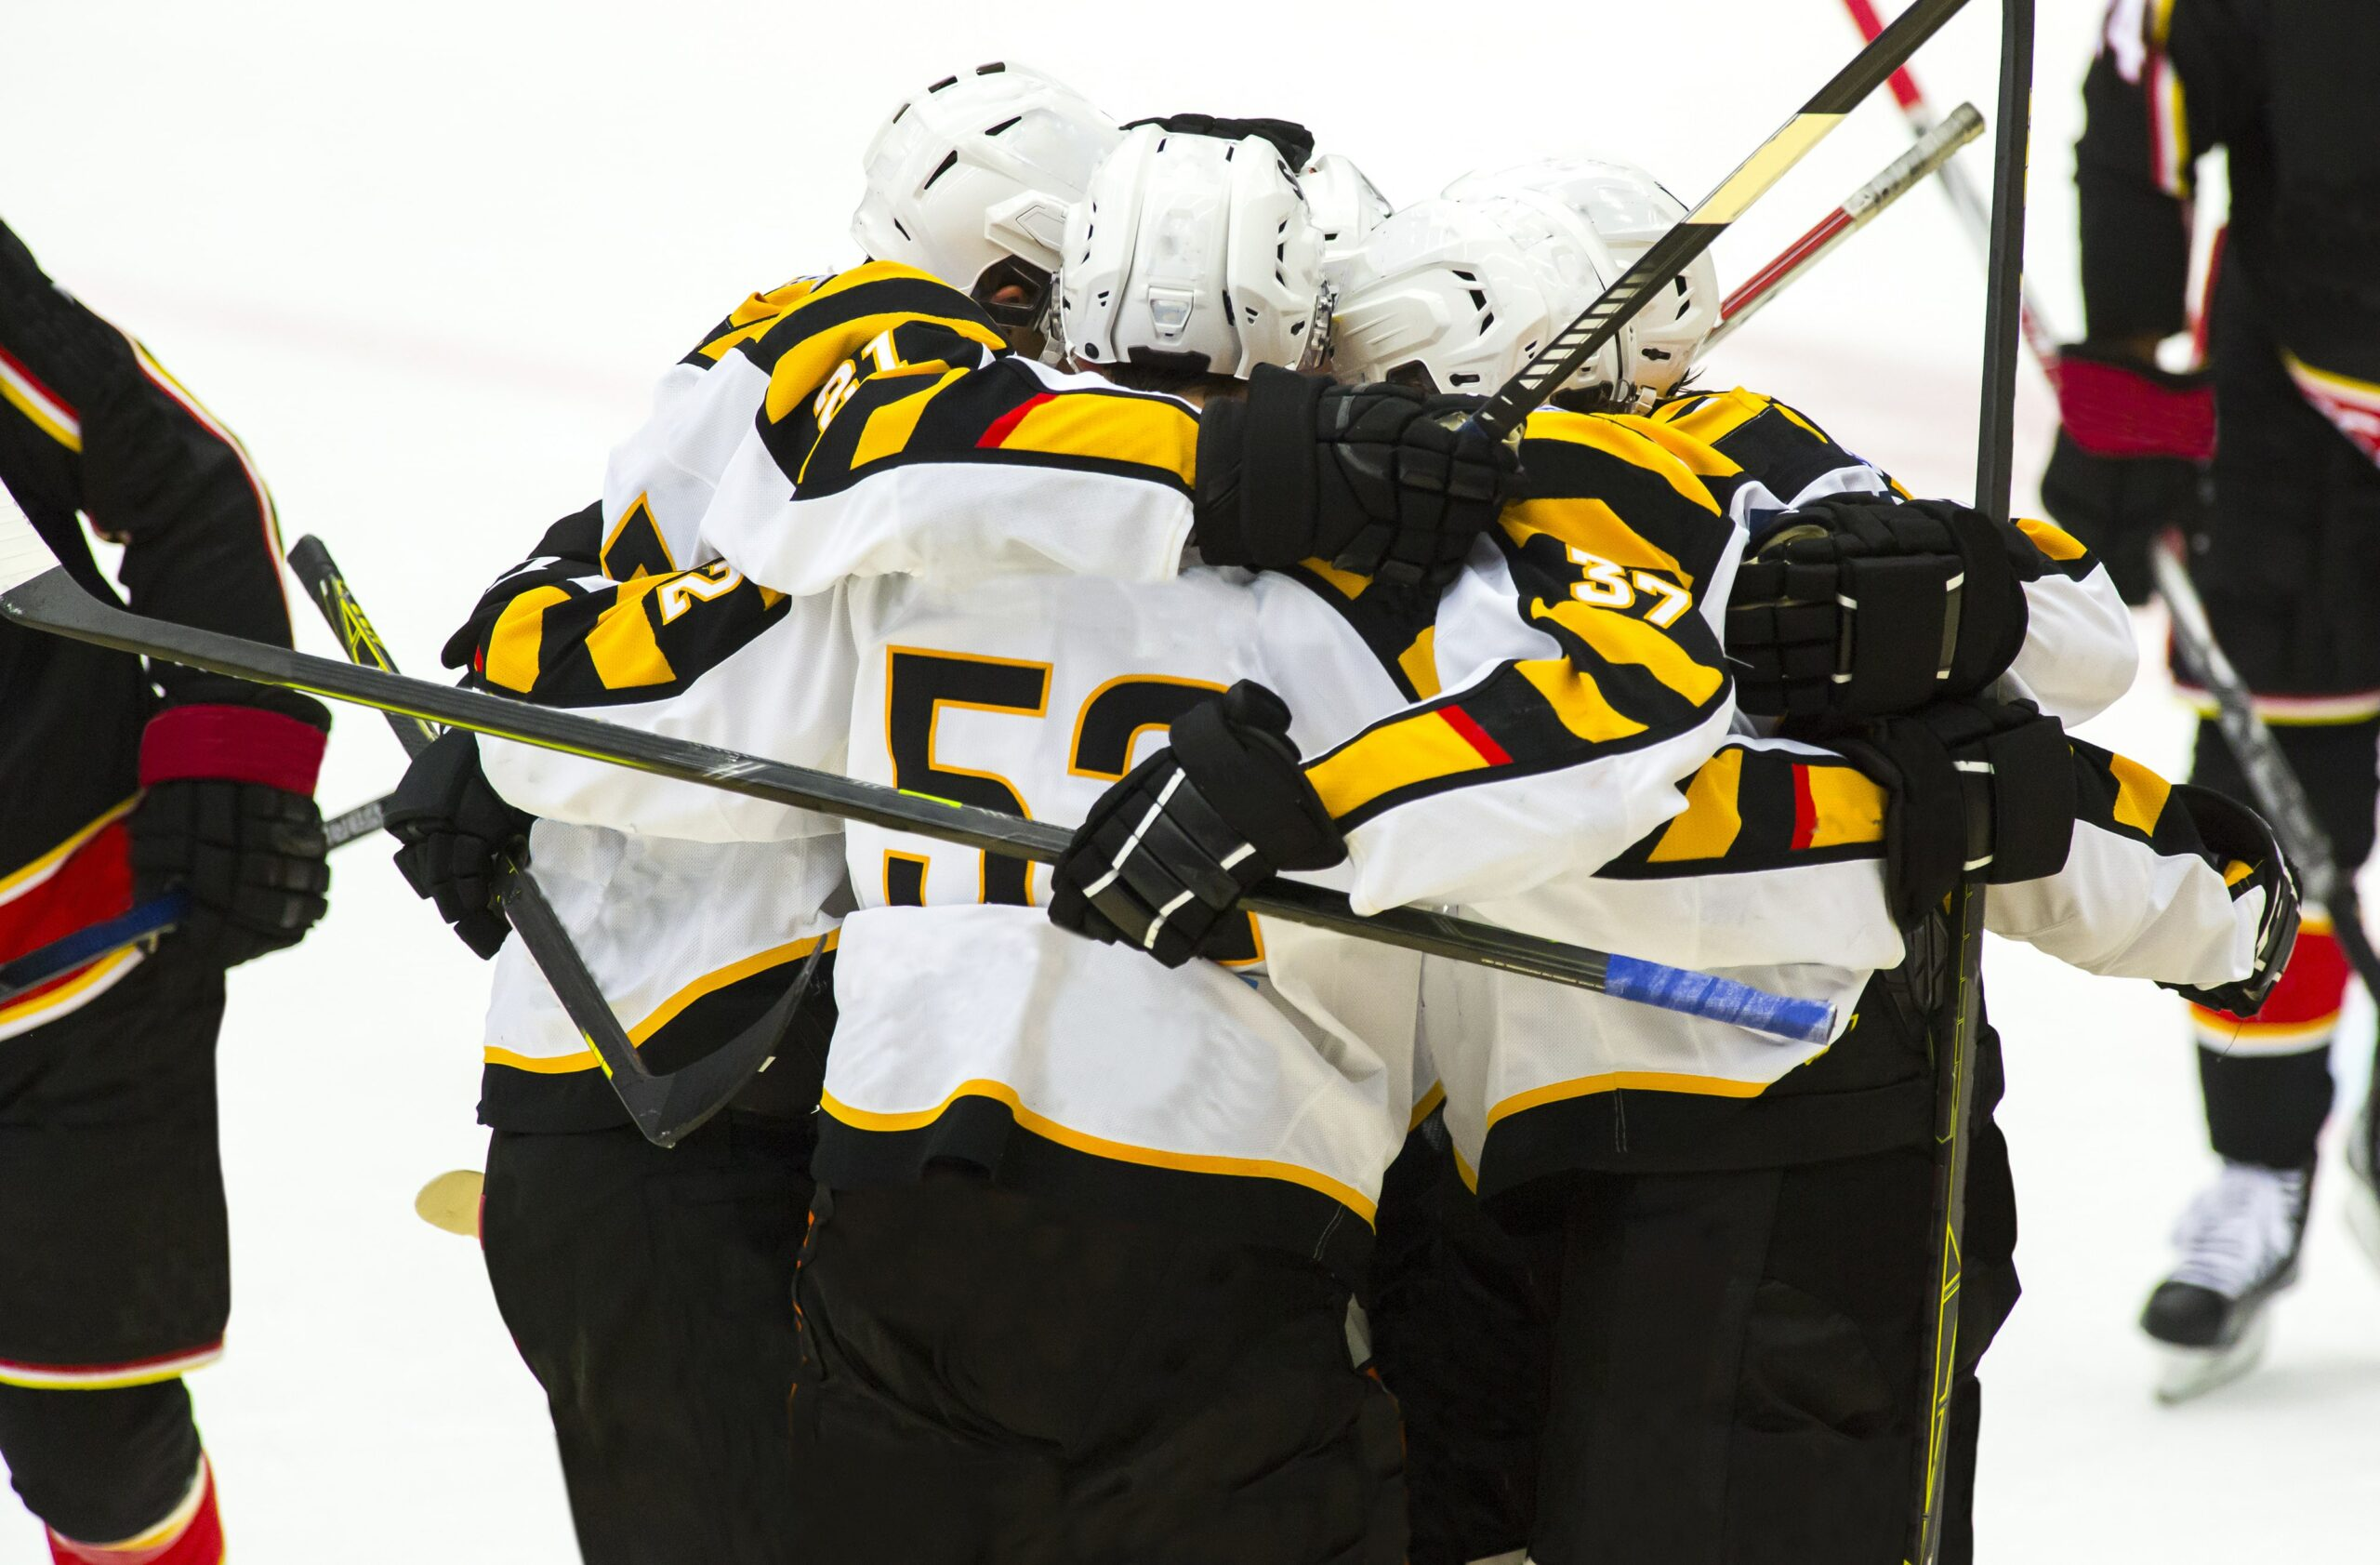 Ice hockey team celebrating